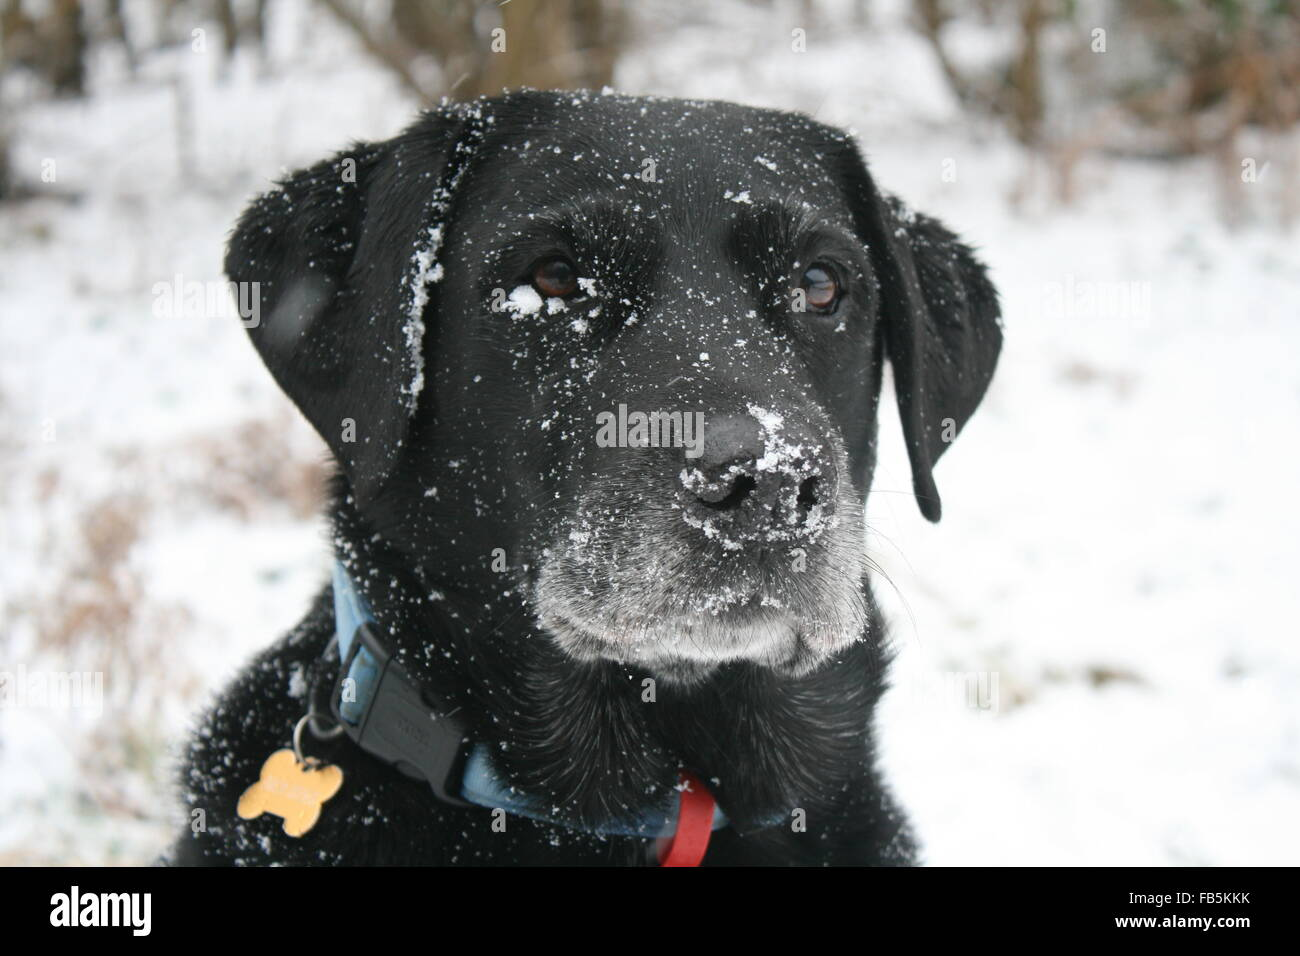 A BLACK LABRADOR COVERED IN SNOW,A CLOSE-UP PHOTO OF HIS HEAD AND ...